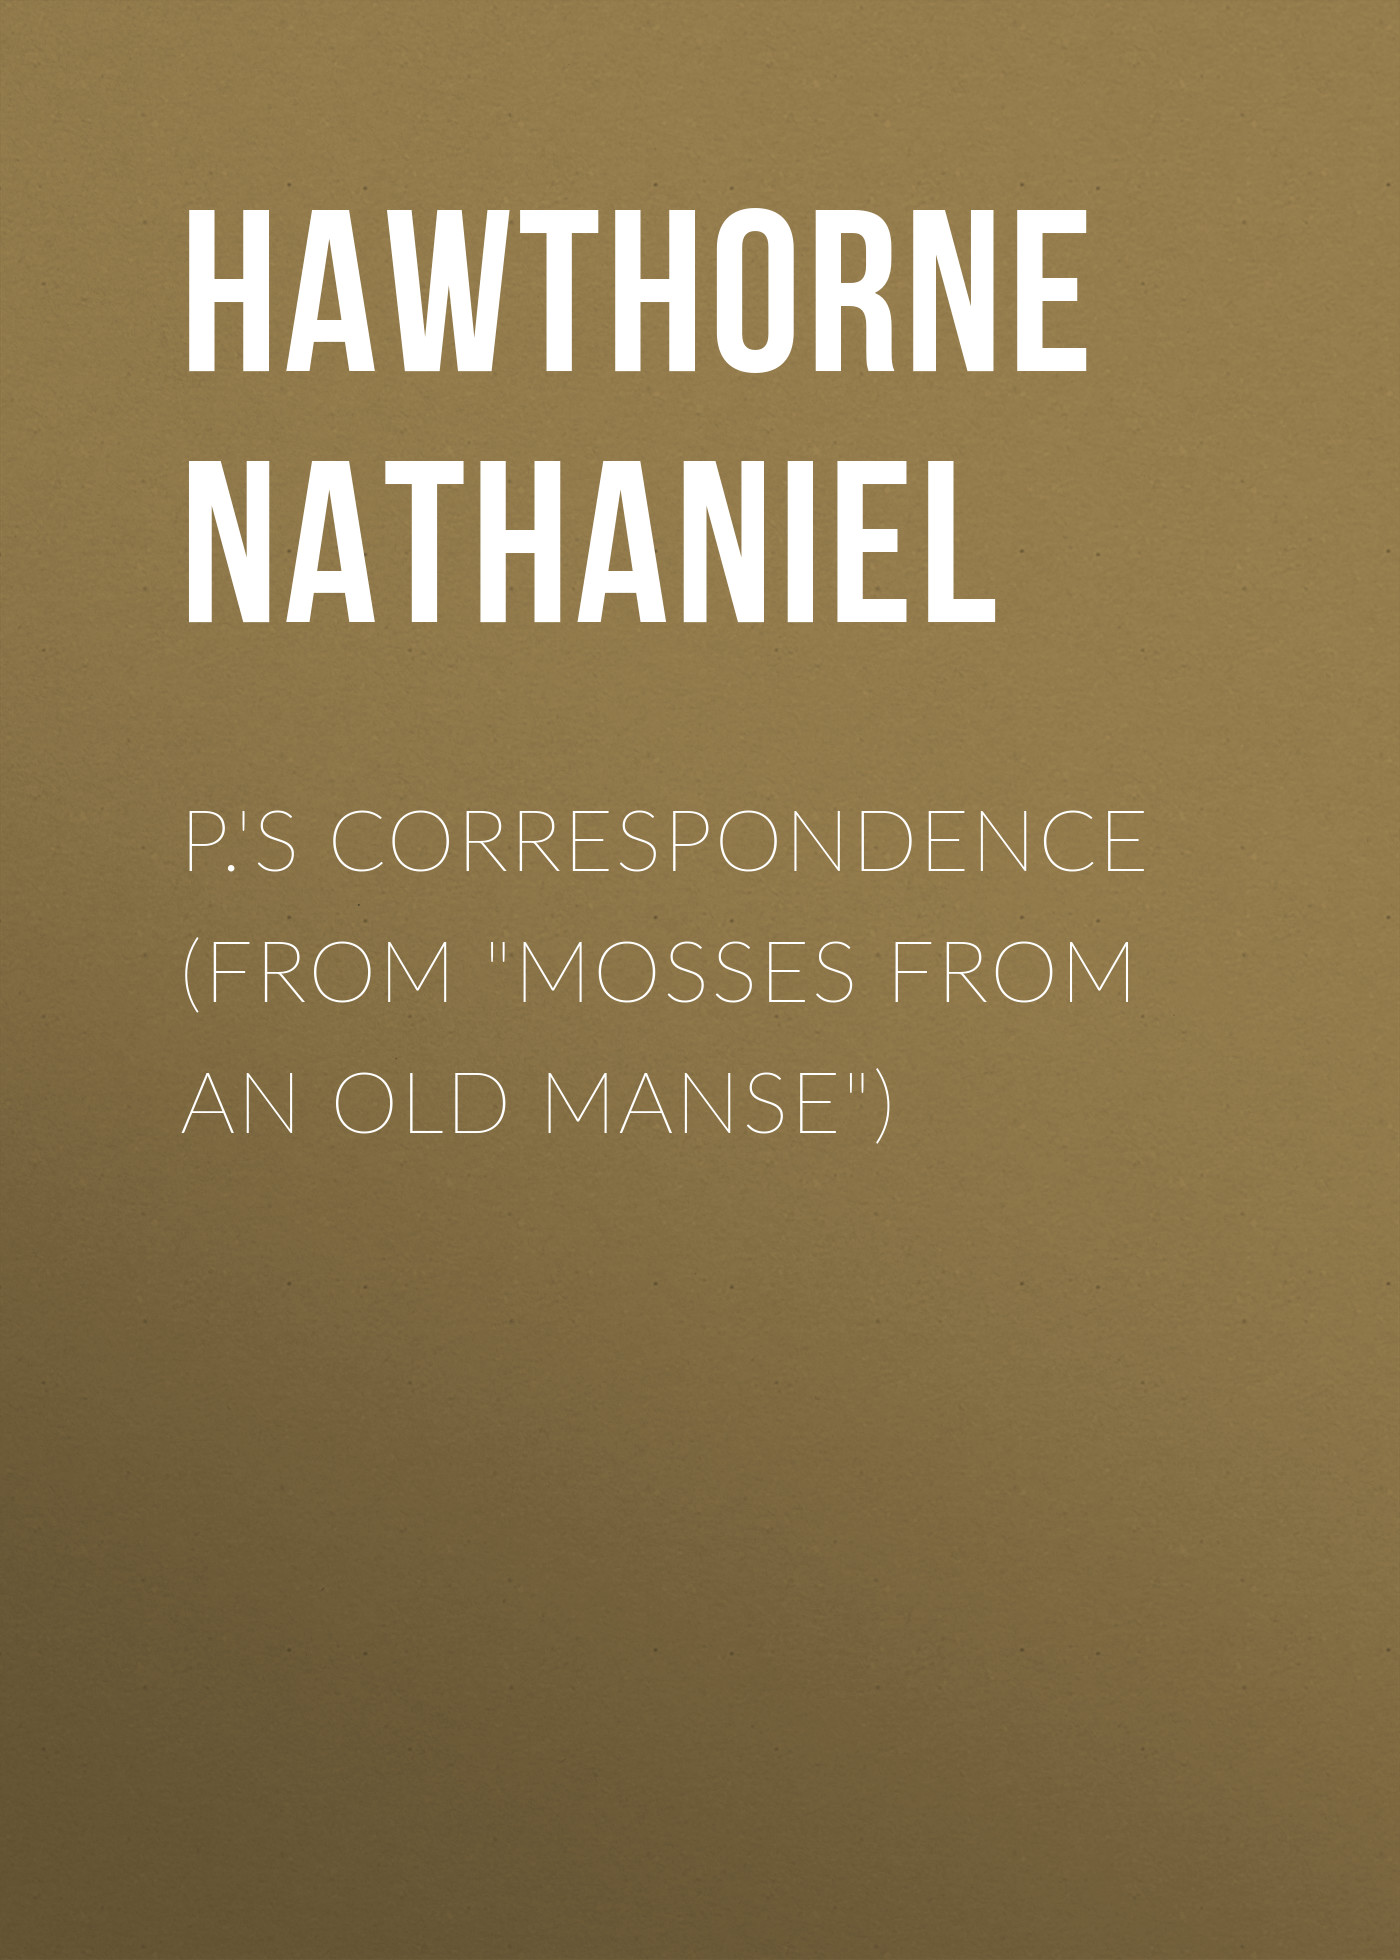 Hawthorne Nathaniel P.'s Correspondence (From Mosses from an Old Manse) hawthorne nathaniel the hall of fantasy from mosses from an old manse